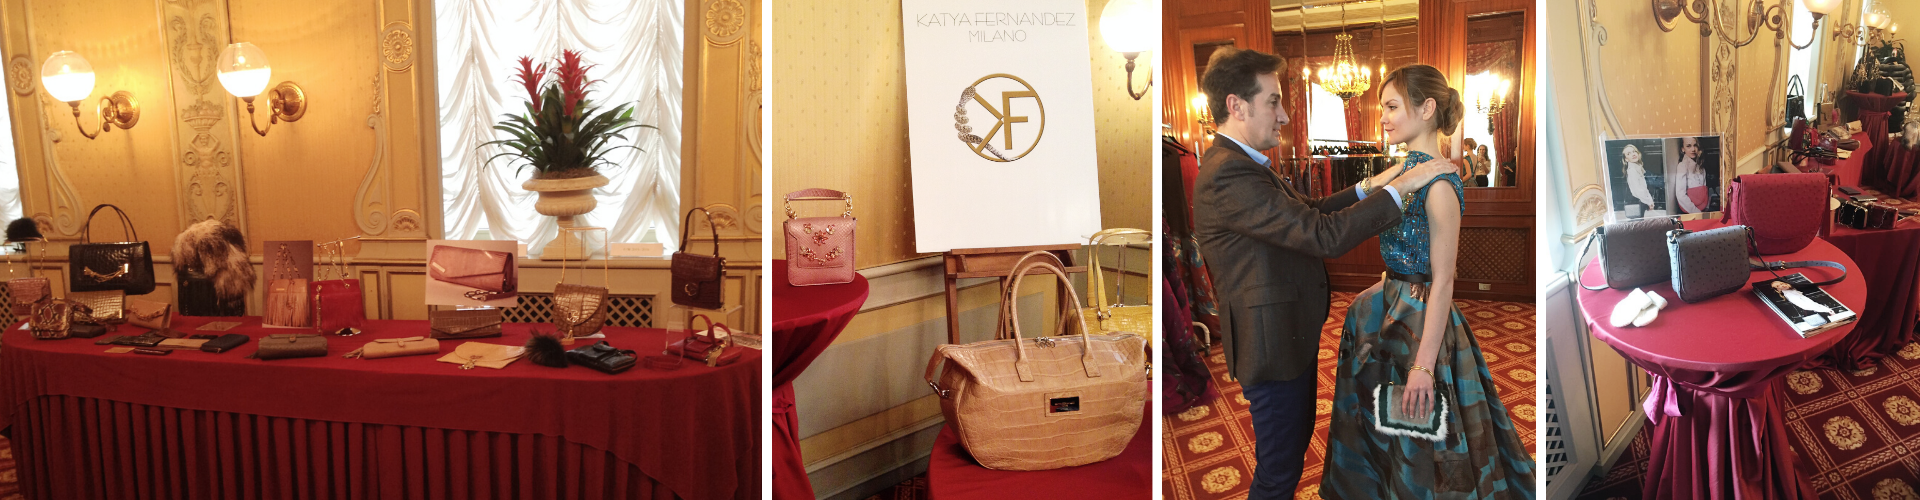 <span>Hotel Principe Di Savoia - Launch of the Mongolia Line bags</span> for the Winter accessories Collection during the MFW. March/2016.